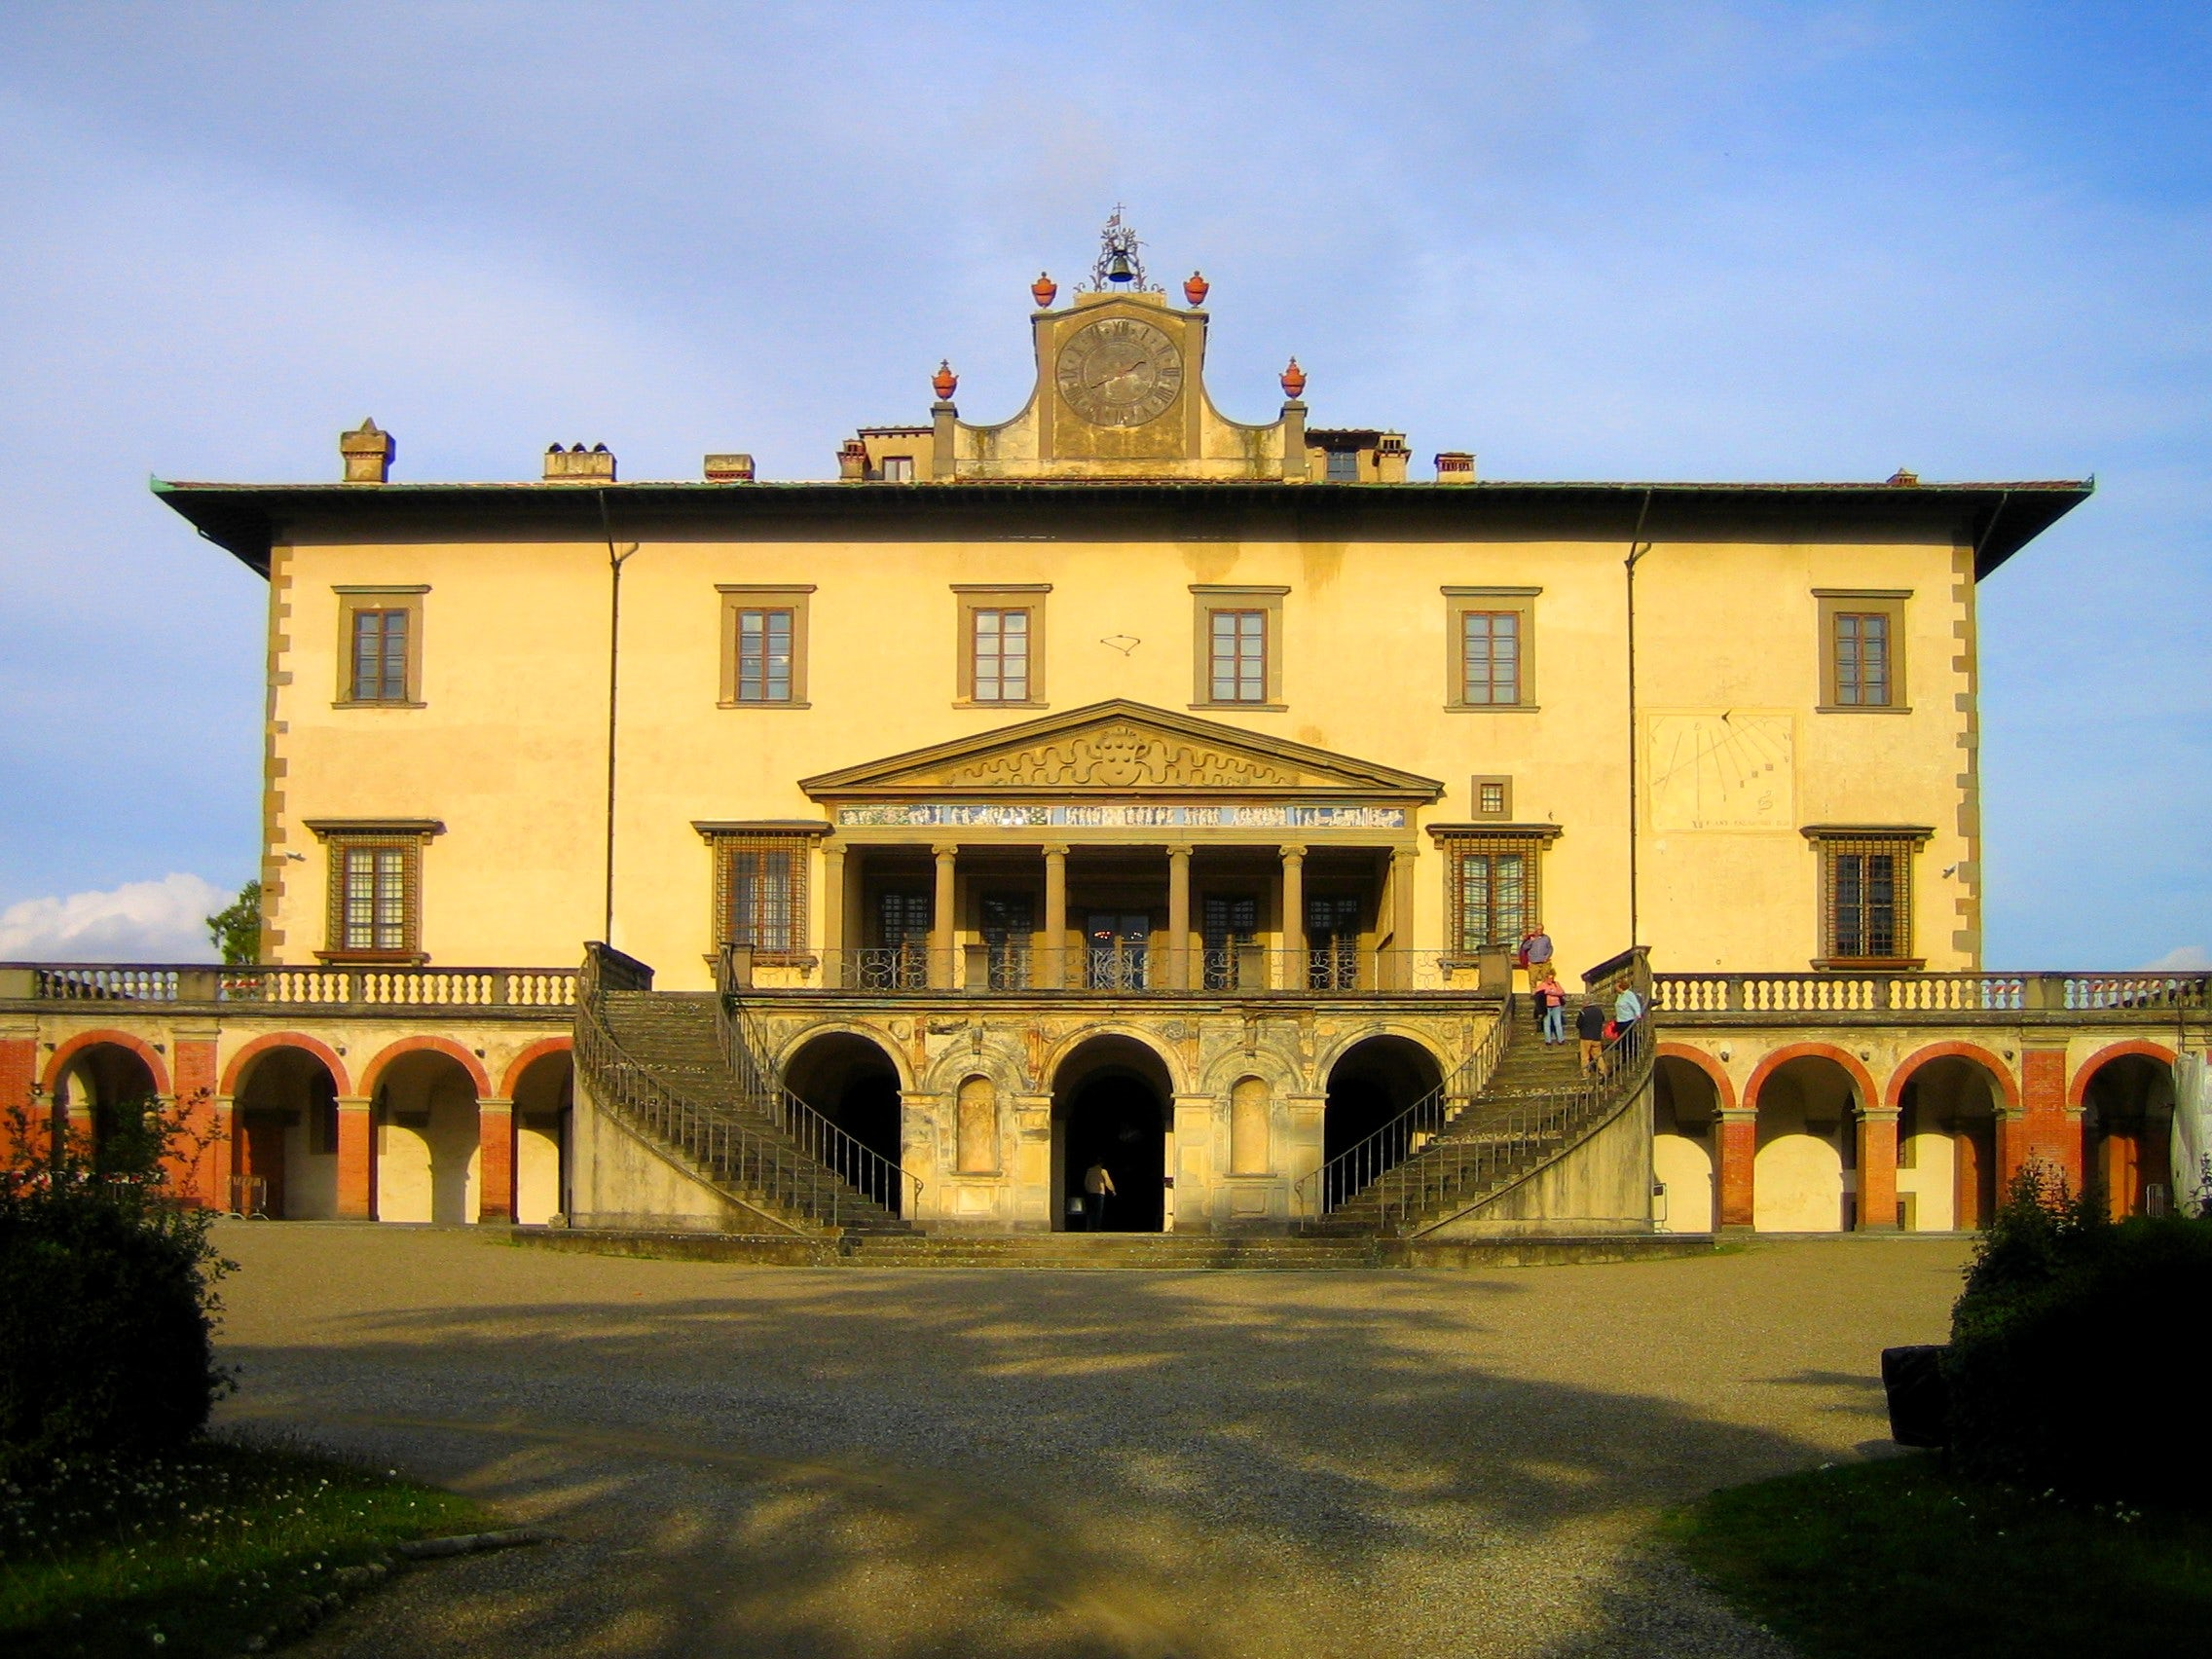 Three free-to-visit Medici Villas in Tuscany